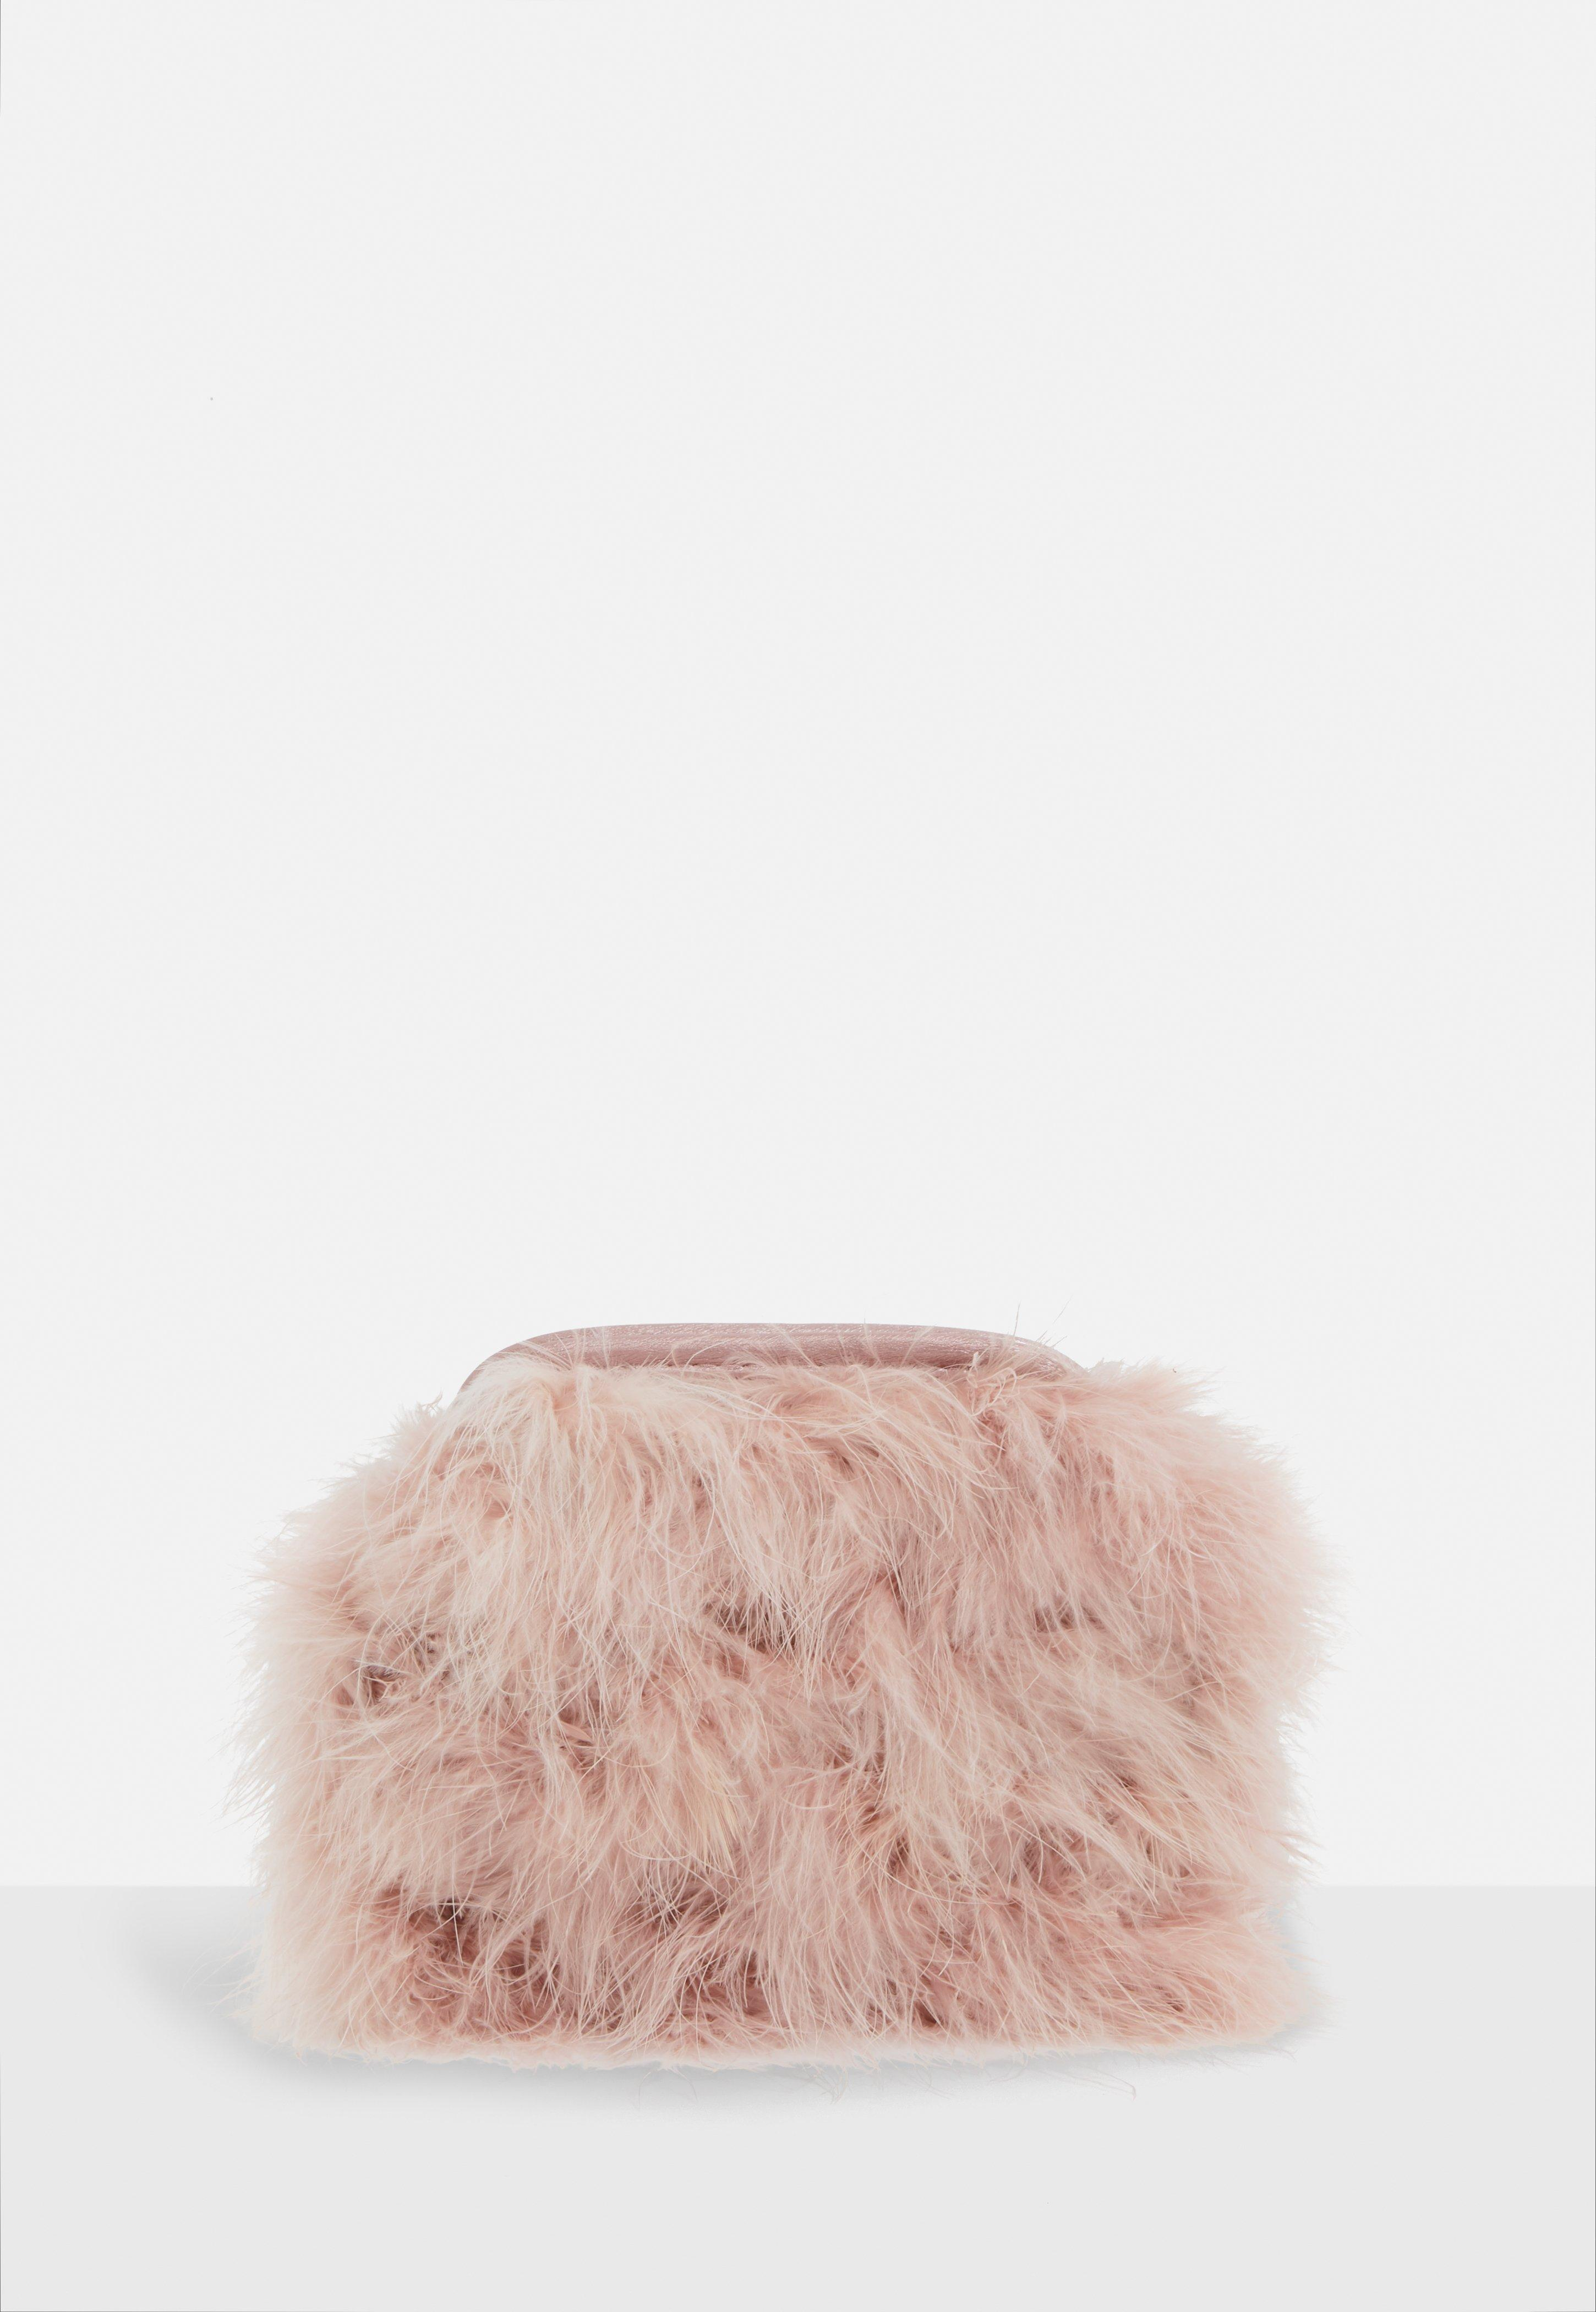 Missguided - Pink Blush Round Feather Clutch Bag - Lyst. View fullscreen 9ee886a5de074